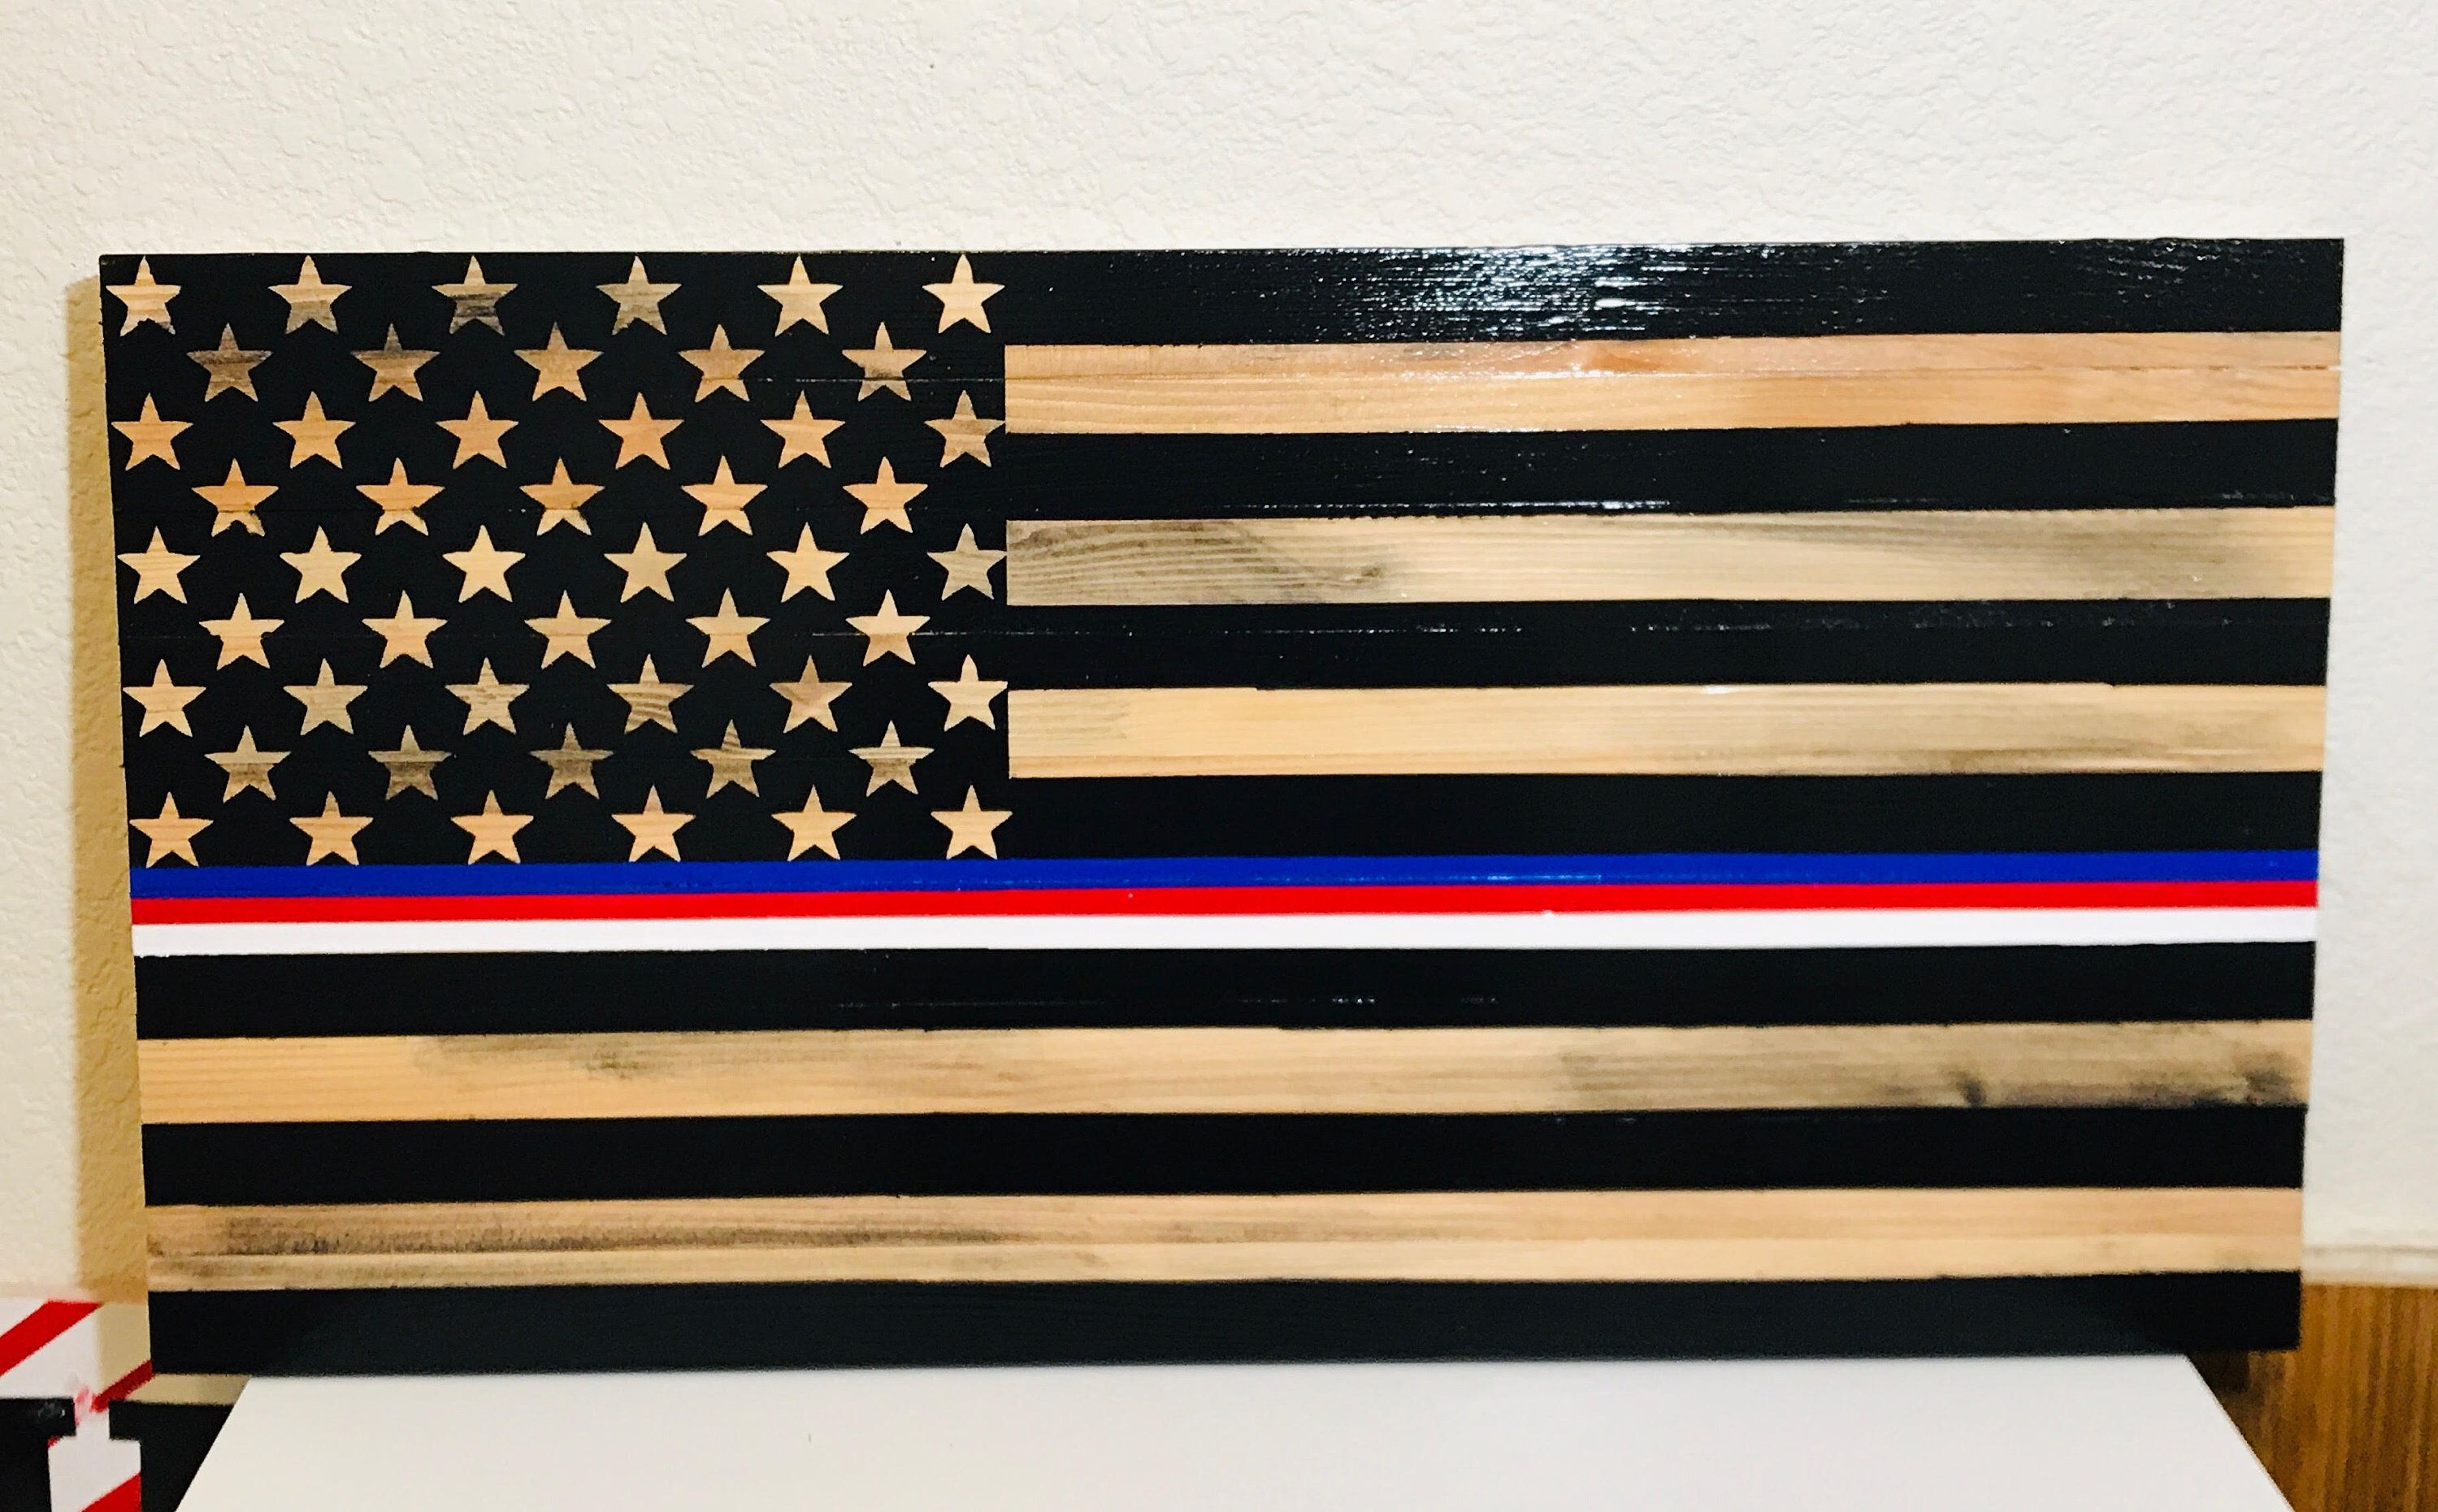 Marines Air Force Navy Army Police Fire Ems Corrections Etsy In 2020 American Flag Wood Wood Flag Rustic Flags